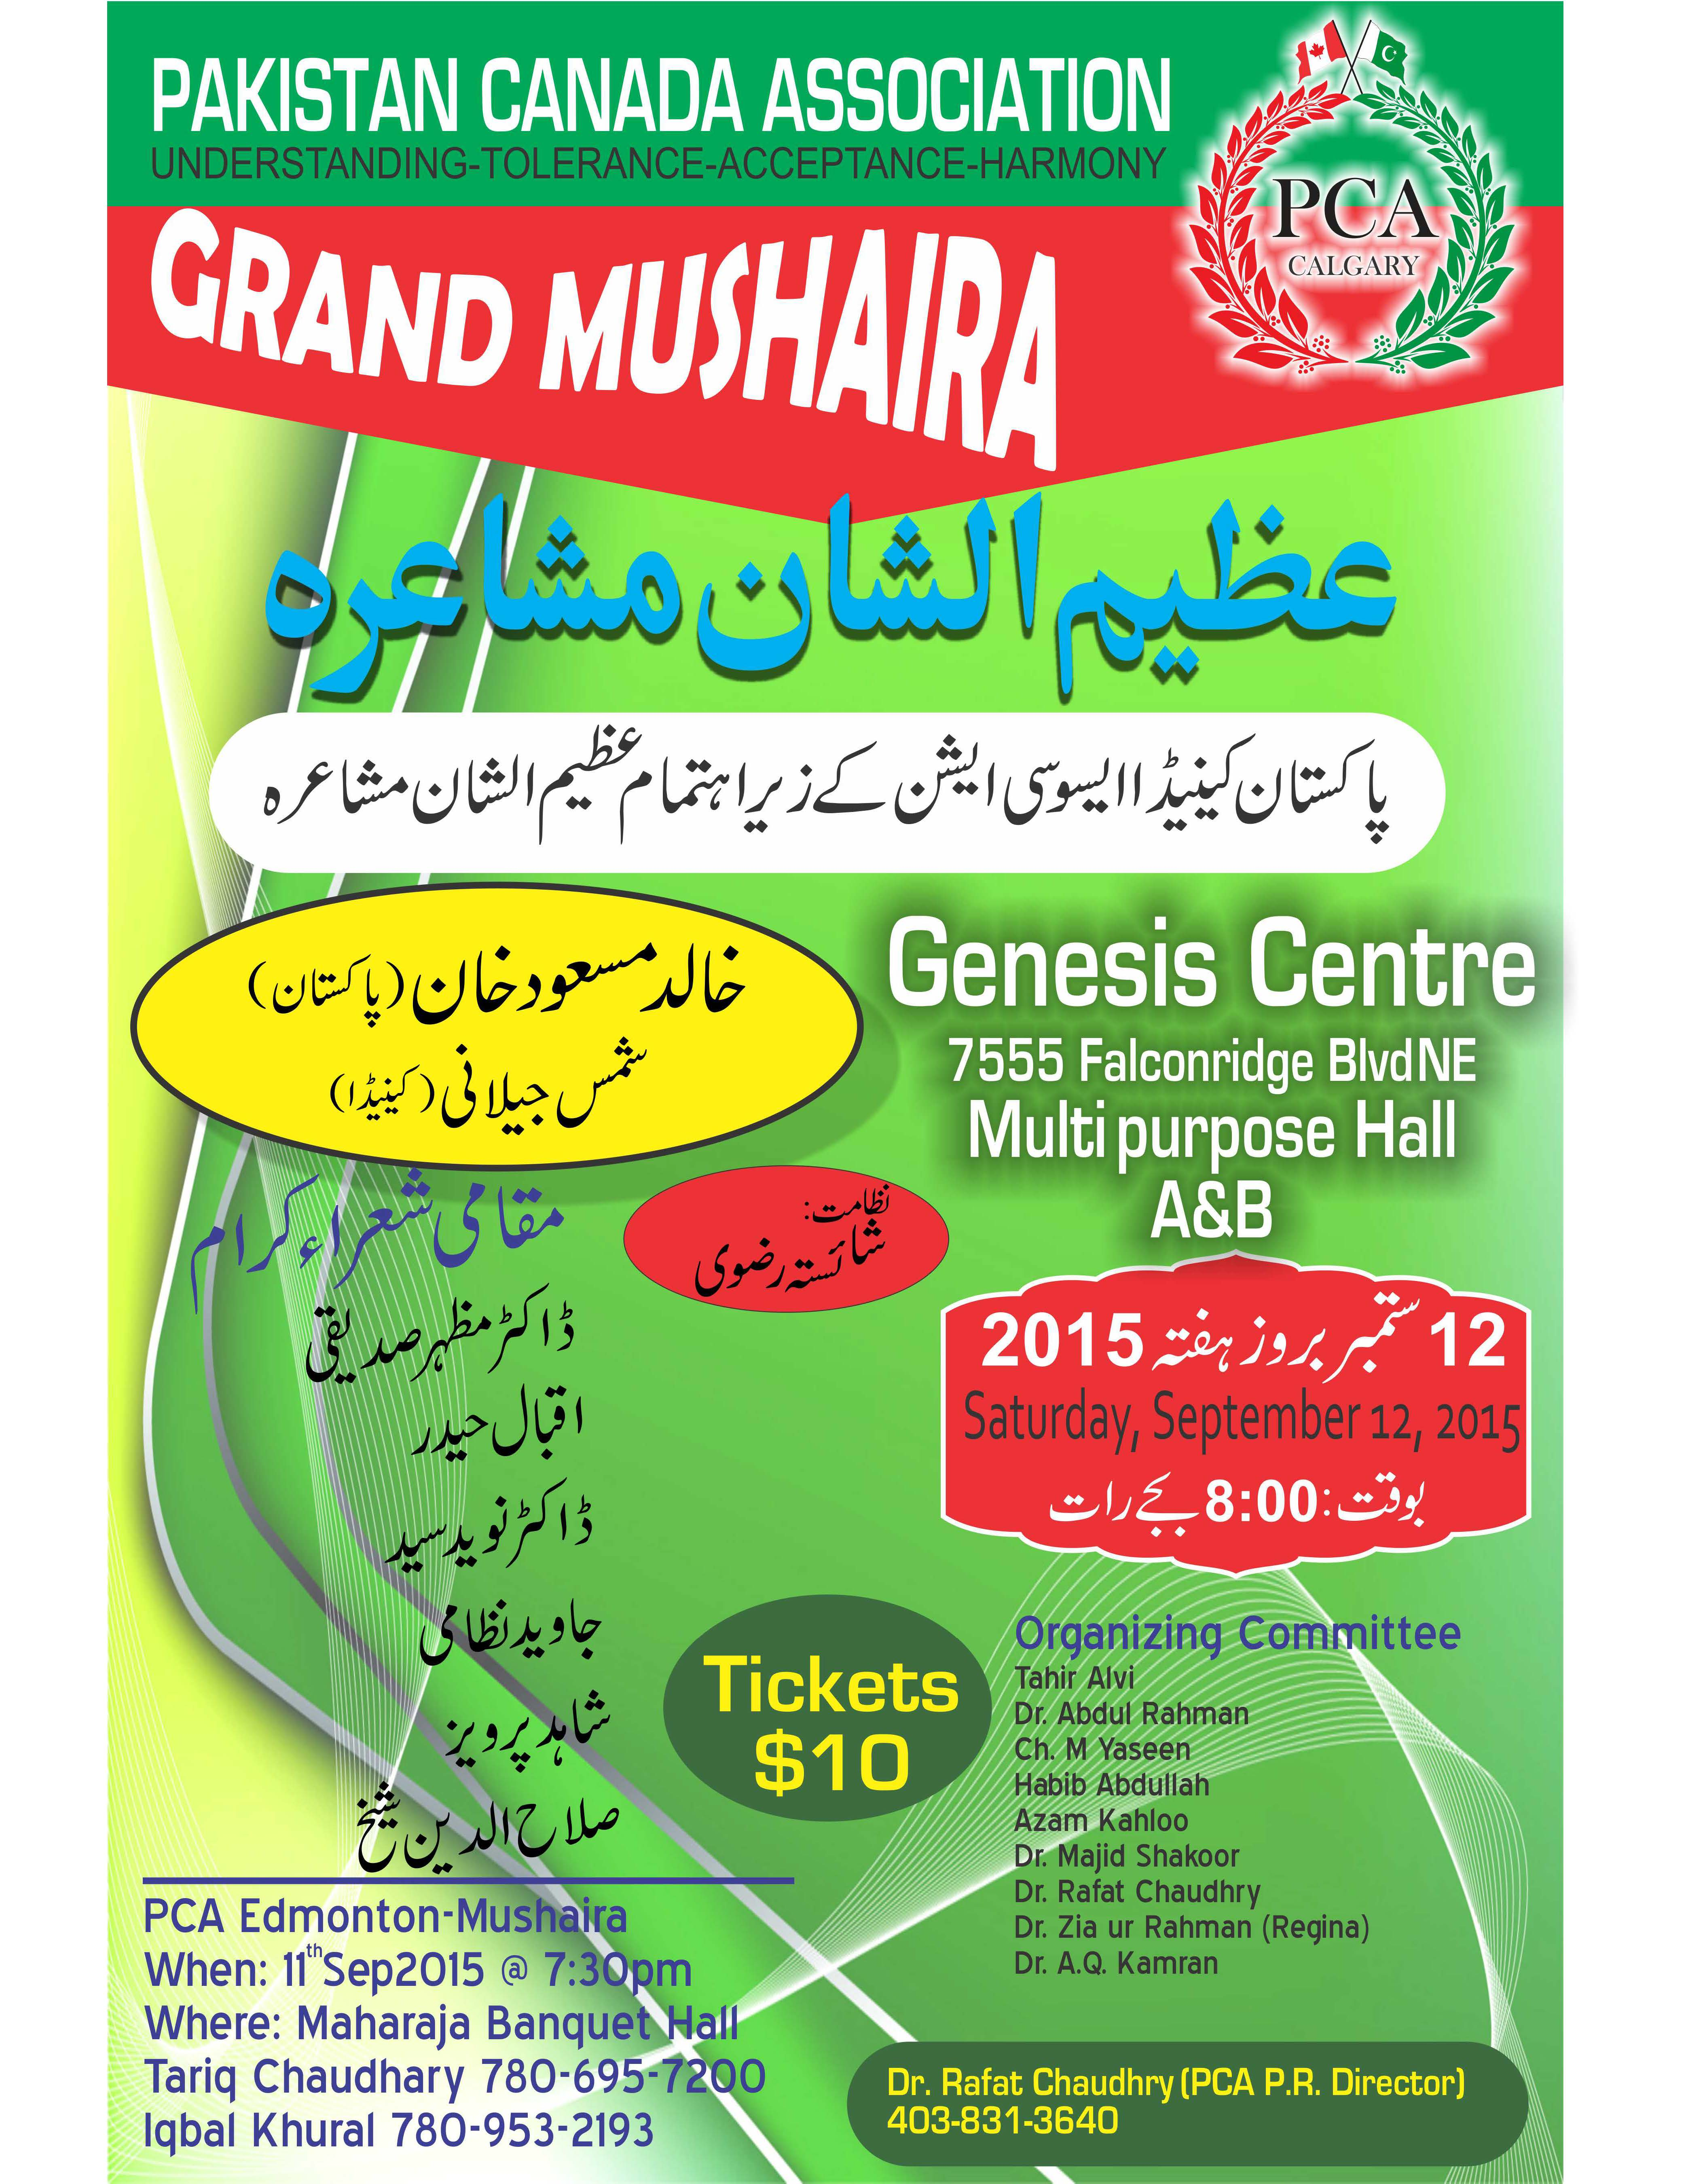 Grand Mushaira to take place on 12th Sept 2015 at Genesis Center Multipurpose hall A and B at 8 PM.